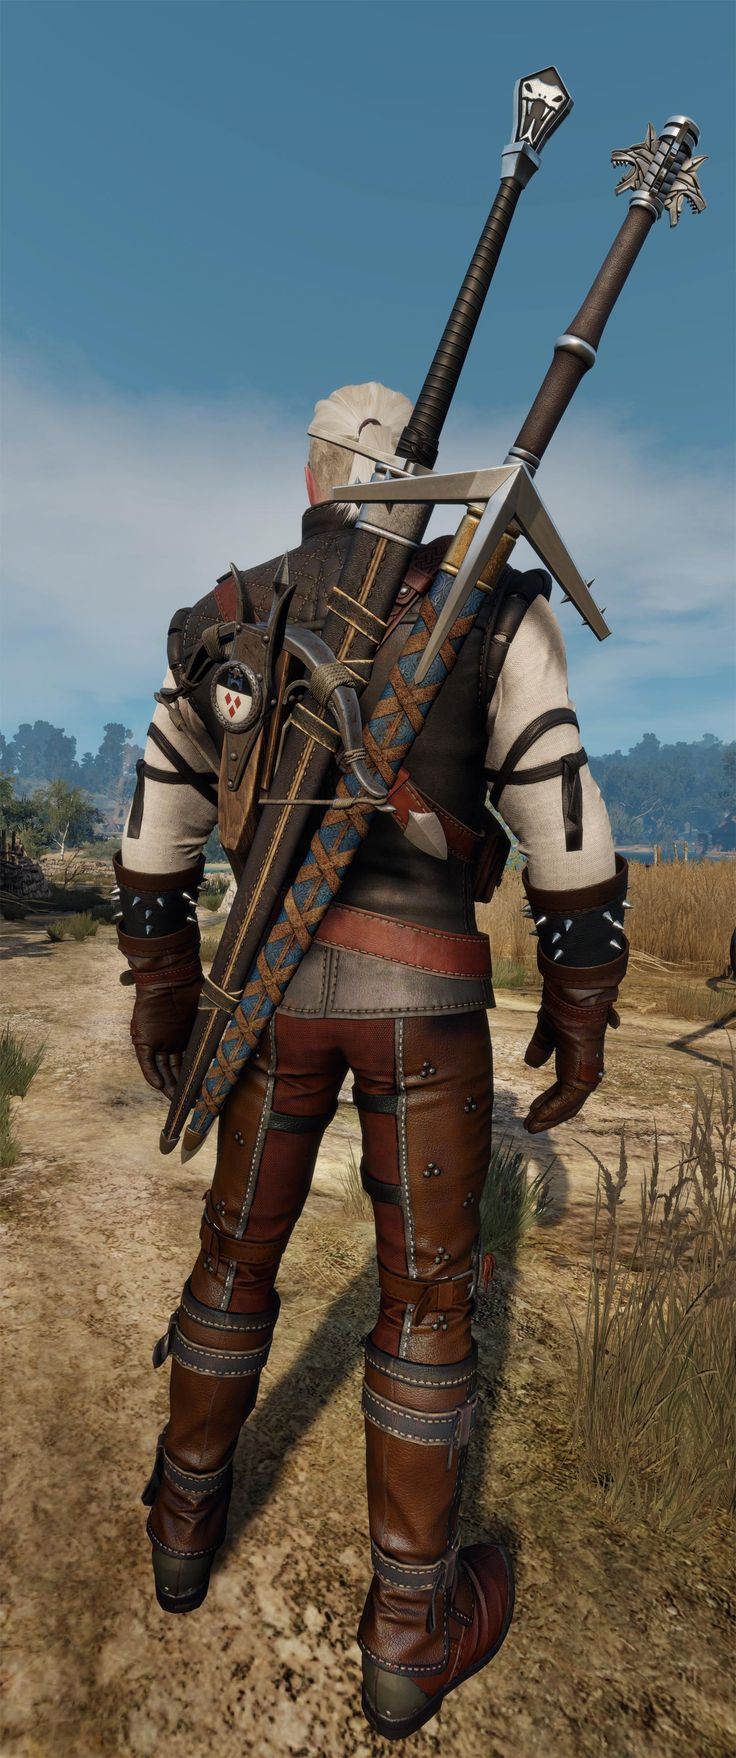 Witcher Swords The witcher, The witcher 3, Wild hunt